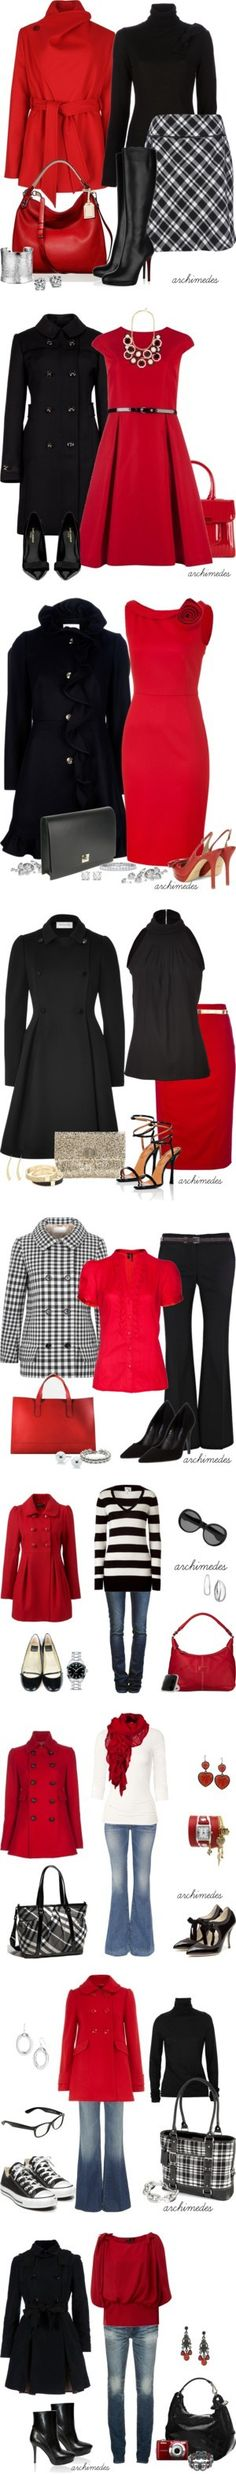 """Red and Black"" by archimedes16 on Polyvore"